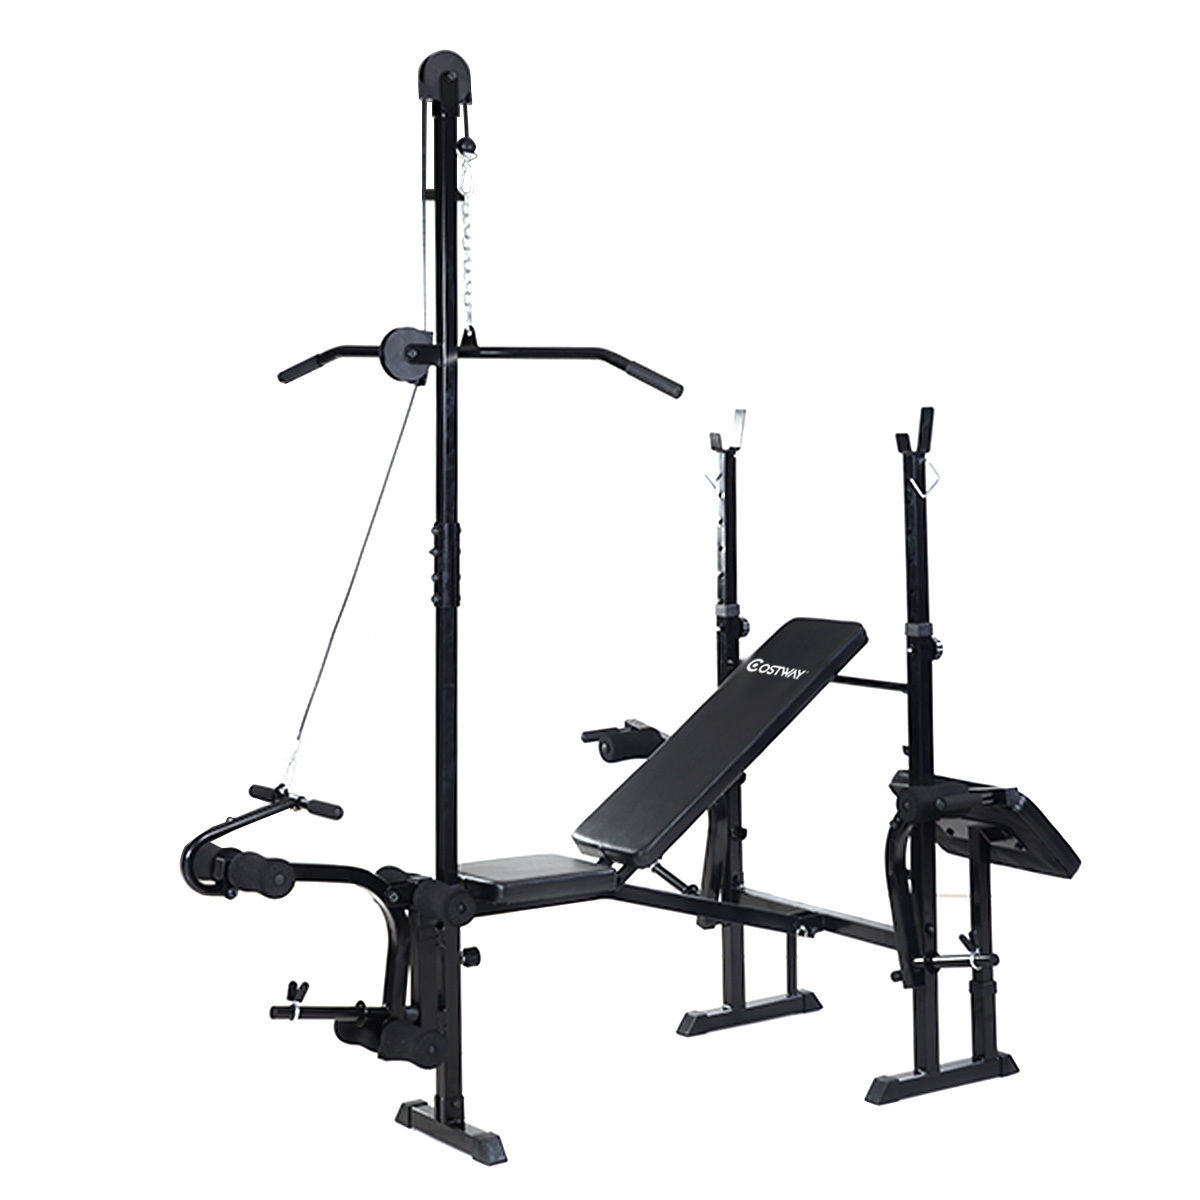 Costway Adjustable Weight Lifting Flat Bench Rack Set Fitness Exercise Body Workout